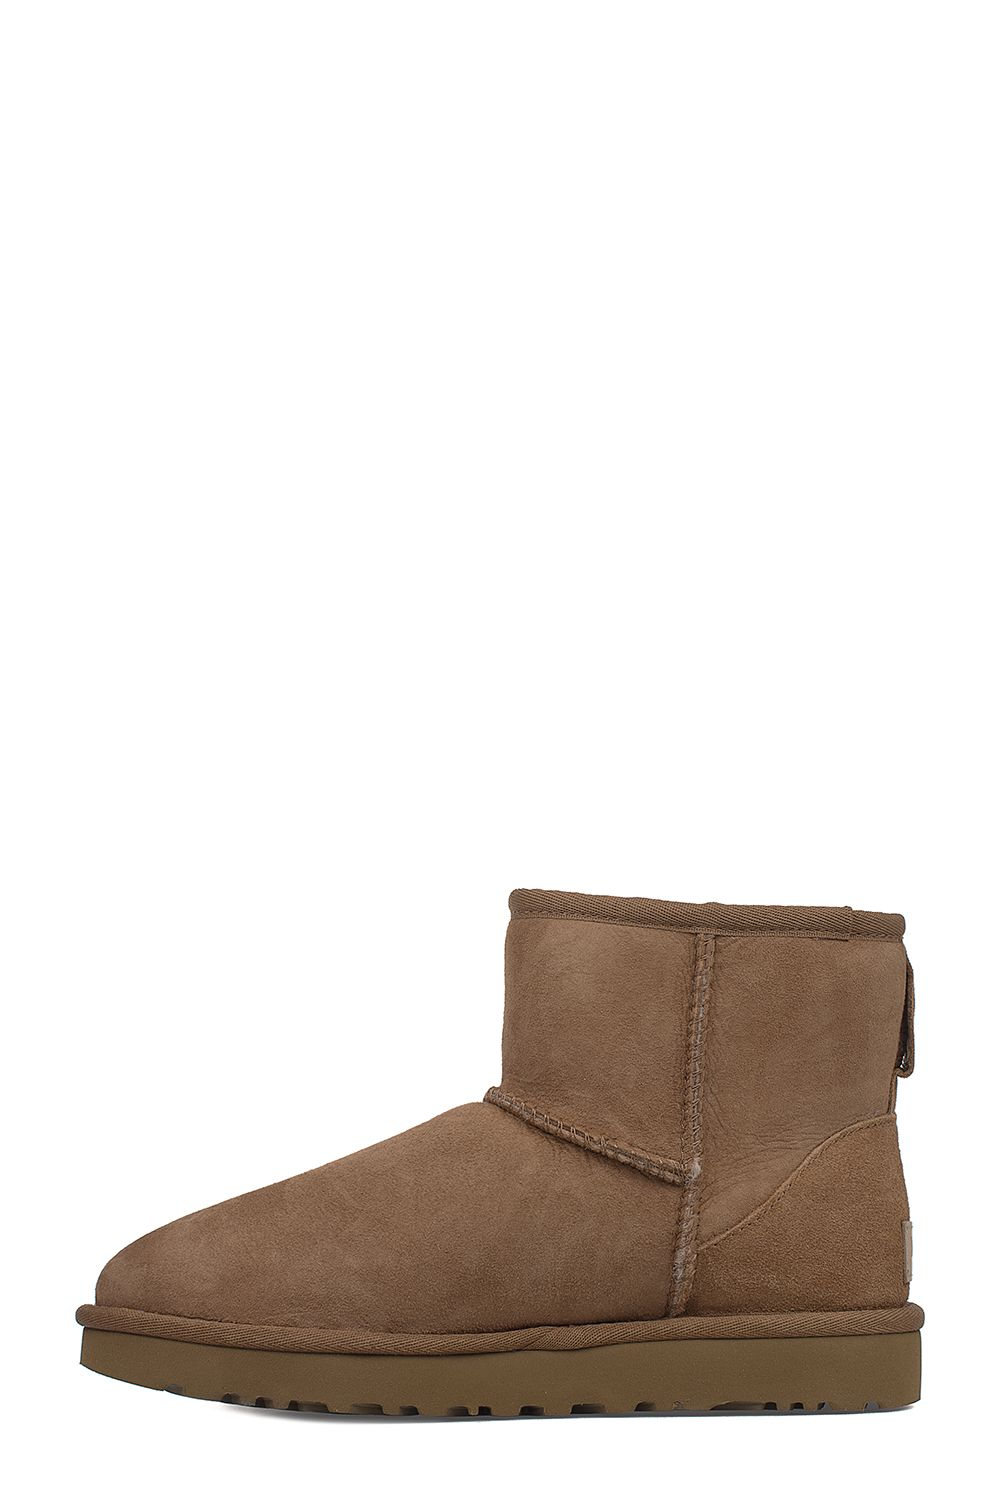 ... UGG Chestnut Mini Classic Low Boot - Brown ...